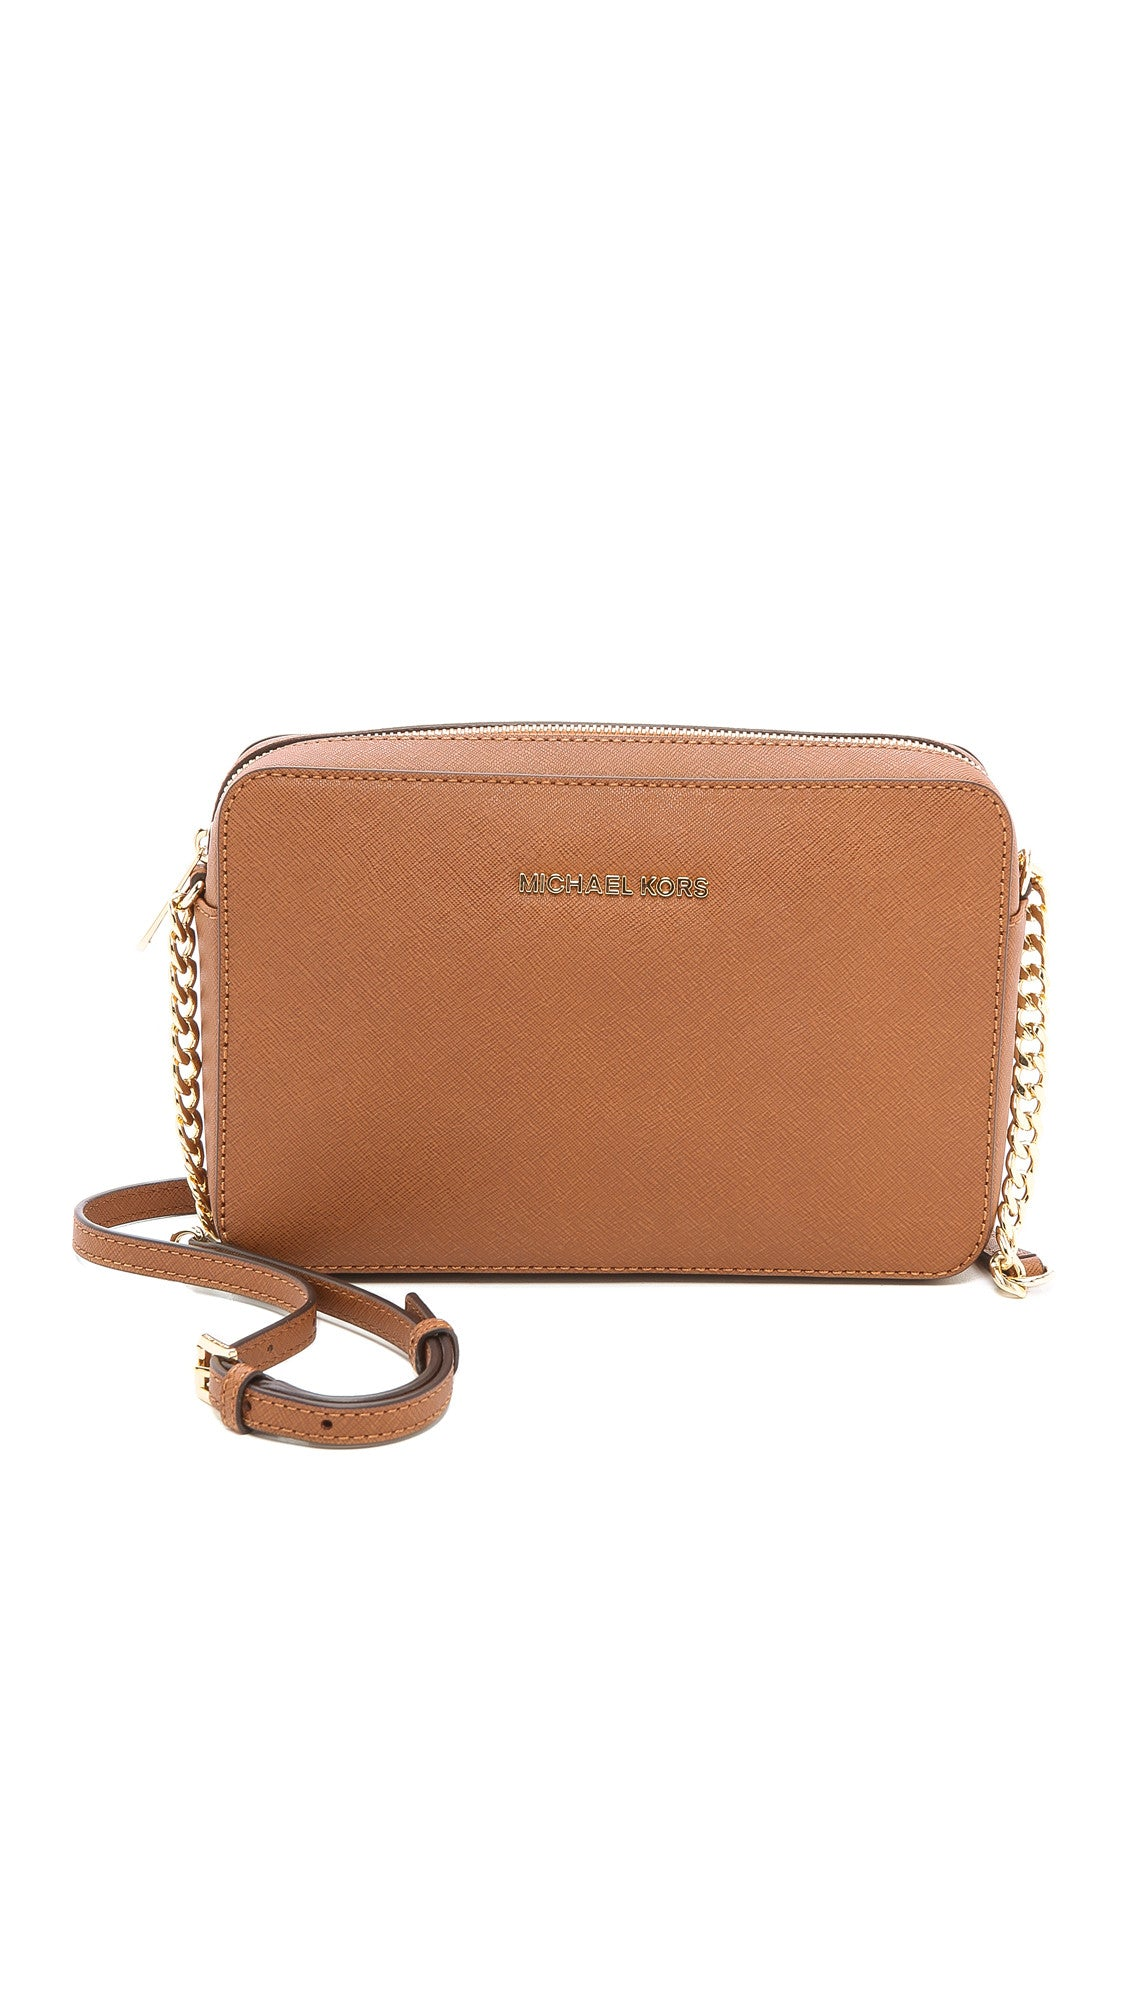 e0512847c2c08d michael-michael-kors--jet-set -cross-body-bag-luggage-product-1-26001378-2-893694120-normal.jpeg?v=1510177134